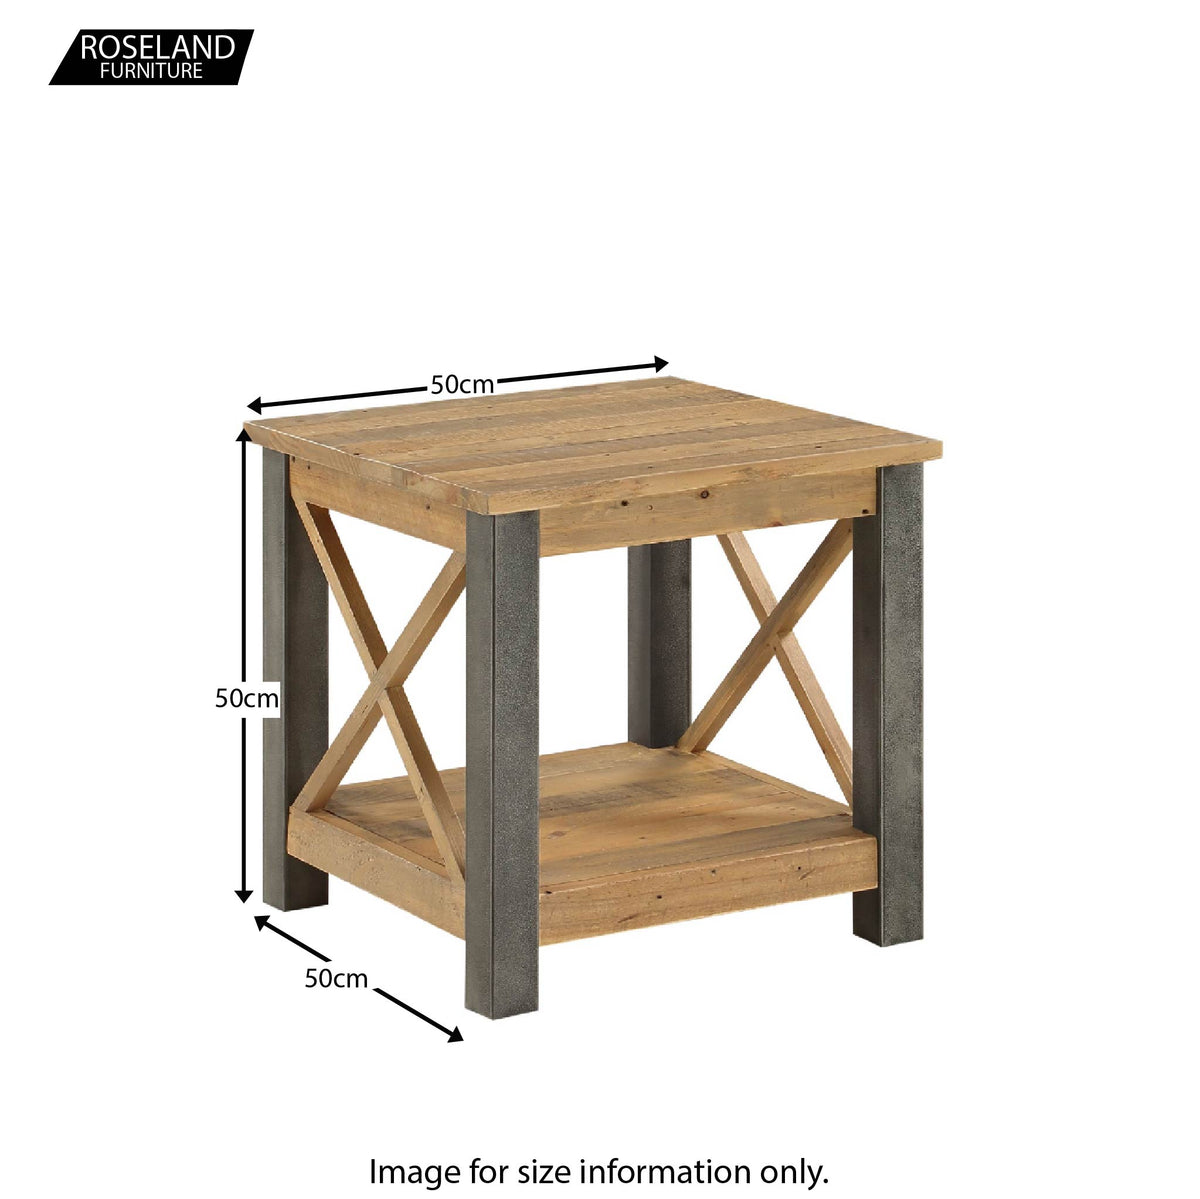 Dimensions for Urban Elegance Reclaimed Wood Side Lamp Table 50 x 50 x 50 cm